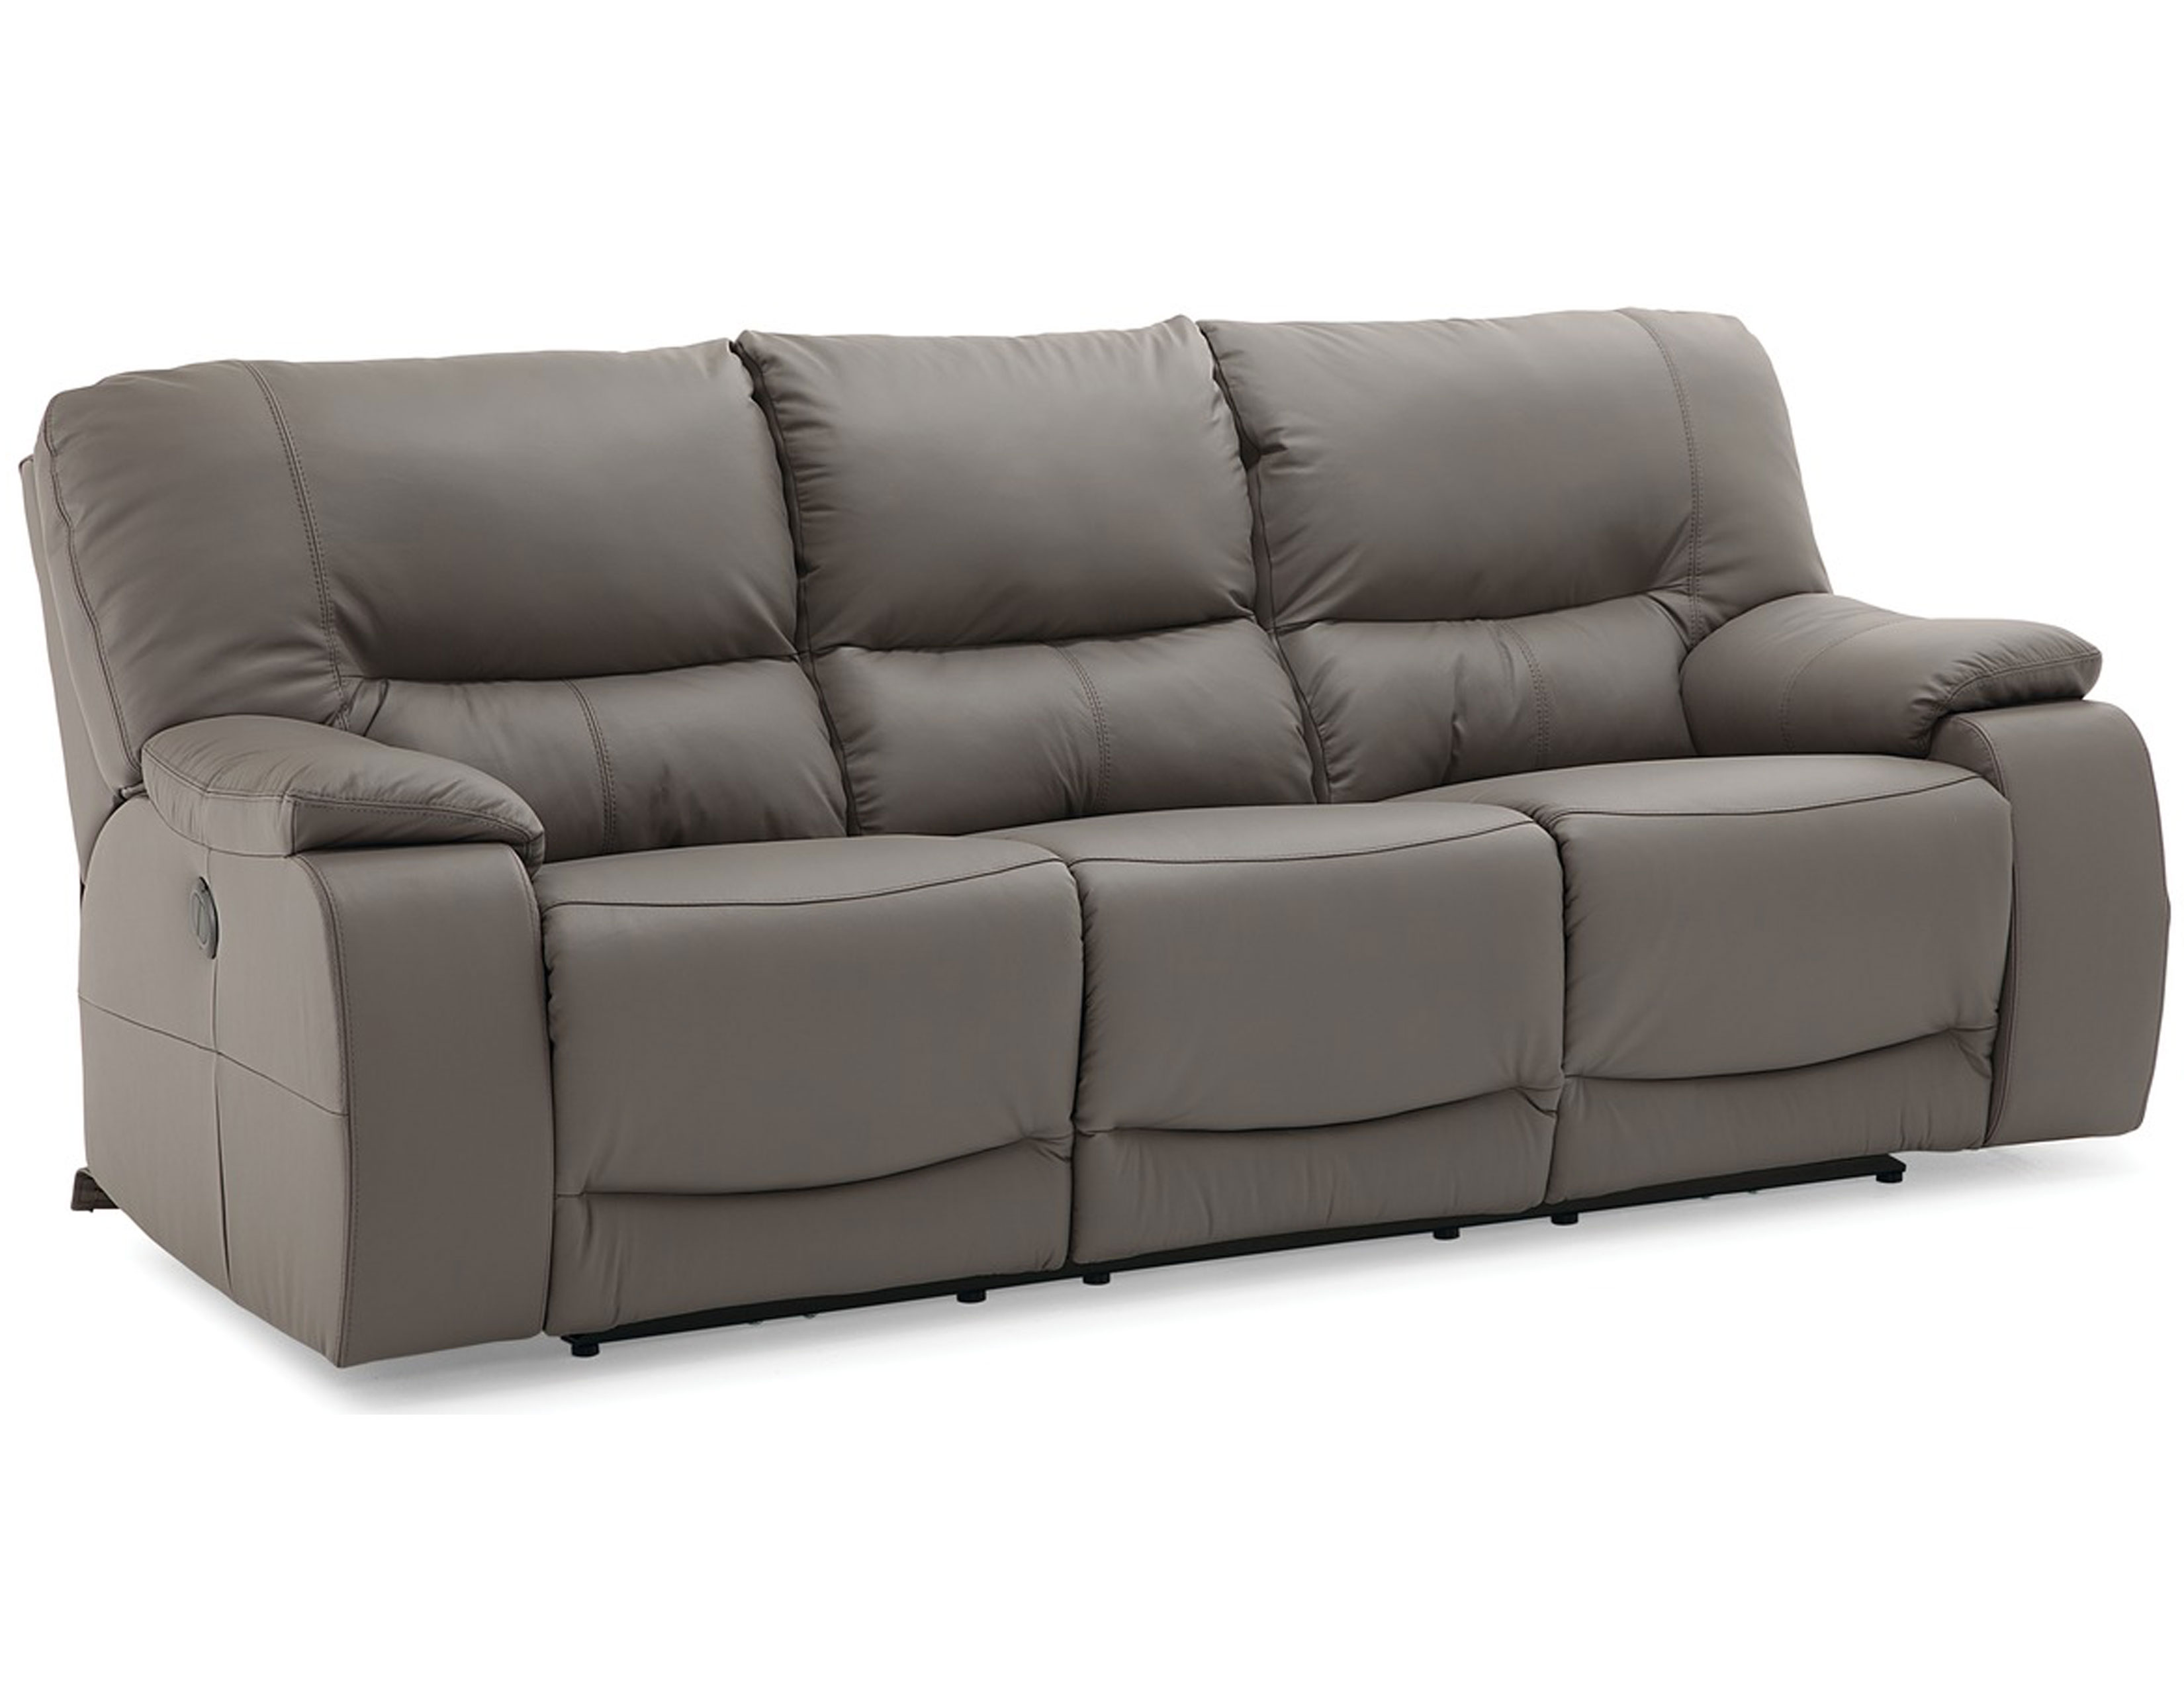 Incredible Norwood 41031 46031 Reclining Sofa Collection Sofas And Spiritservingveterans Wood Chair Design Ideas Spiritservingveteransorg